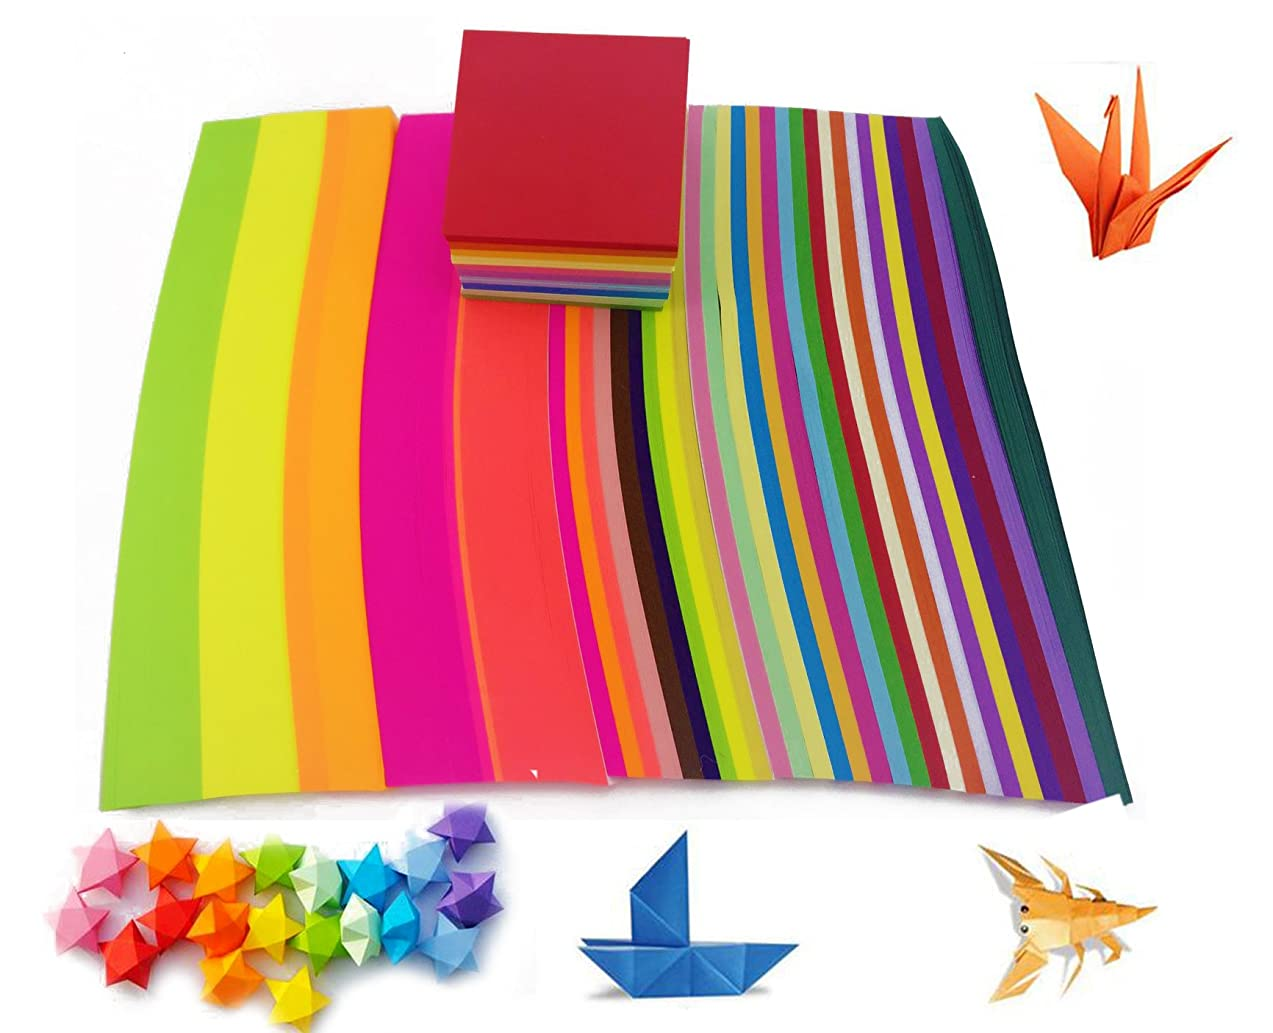 3220 Sheets ISusser Double Sided Origami Paper Included 1350 Sheets Origami Paper Star Strips Paper, 1350 Sheets Fluorescent Origami Star Paper And 520 Sheets Origami Cranes Paper, Assorted Colors.